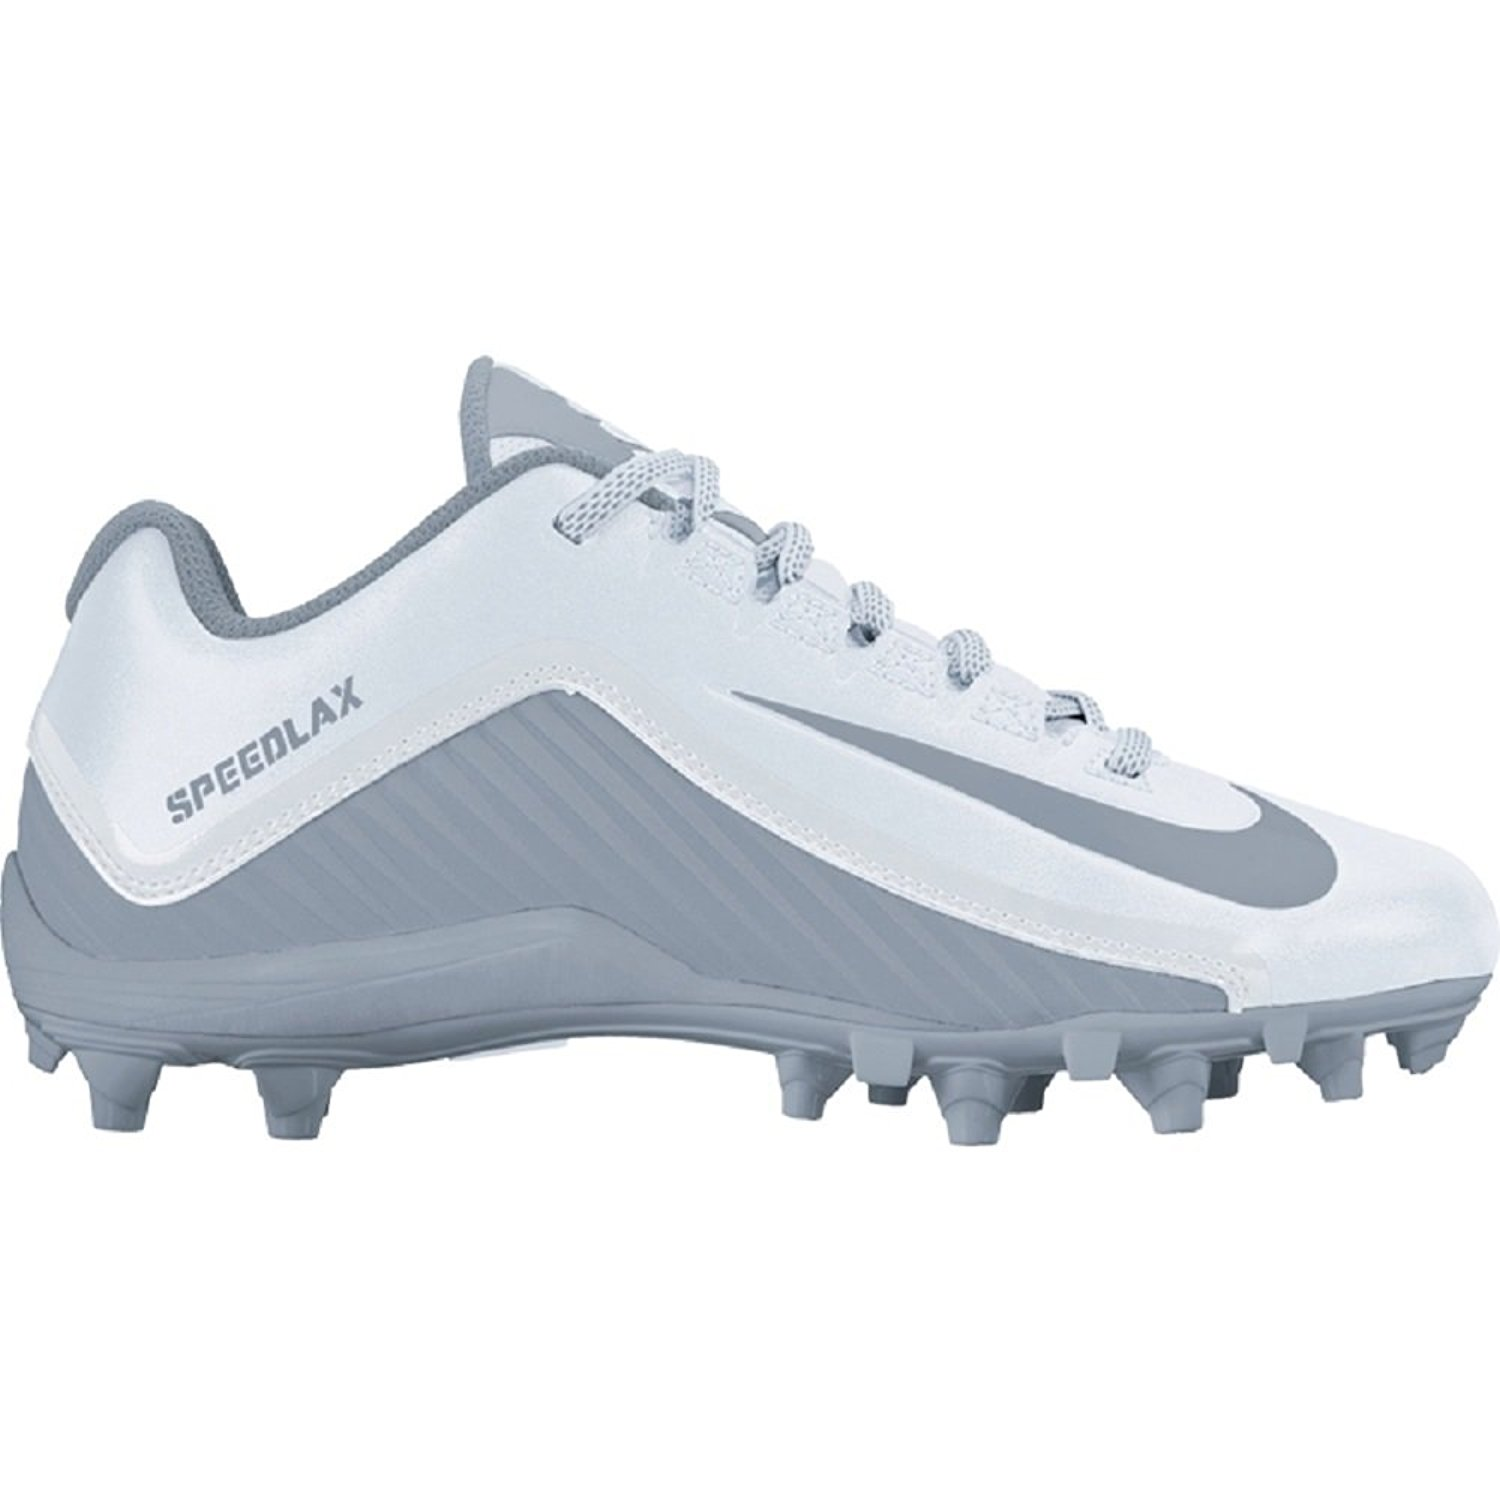 5092ff3757bf7 Cheap Lacrosse Cleats For Girls, find Lacrosse Cleats For Girls ...